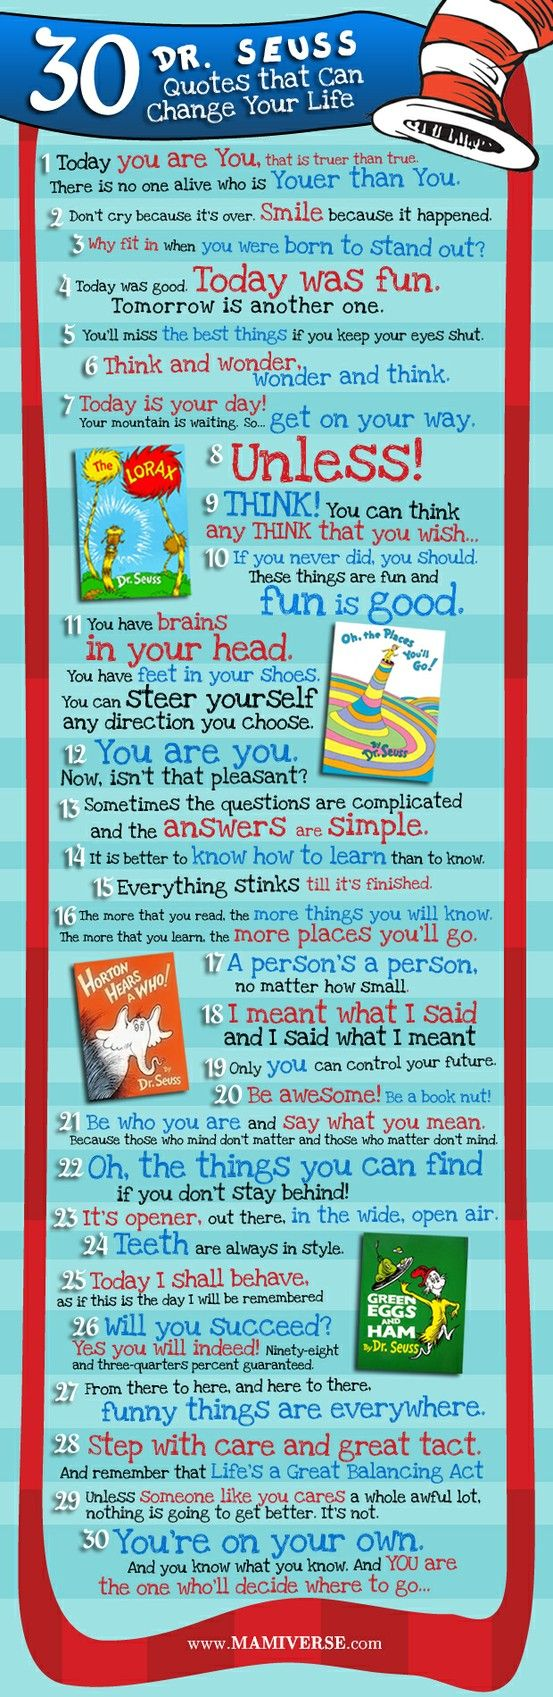 Dr SeussIdeas, Inspiration, Drseus, Life Lessons, Kids, Dr Suess, Seuss Quotes, Dr. Seuss, Dr. Suess